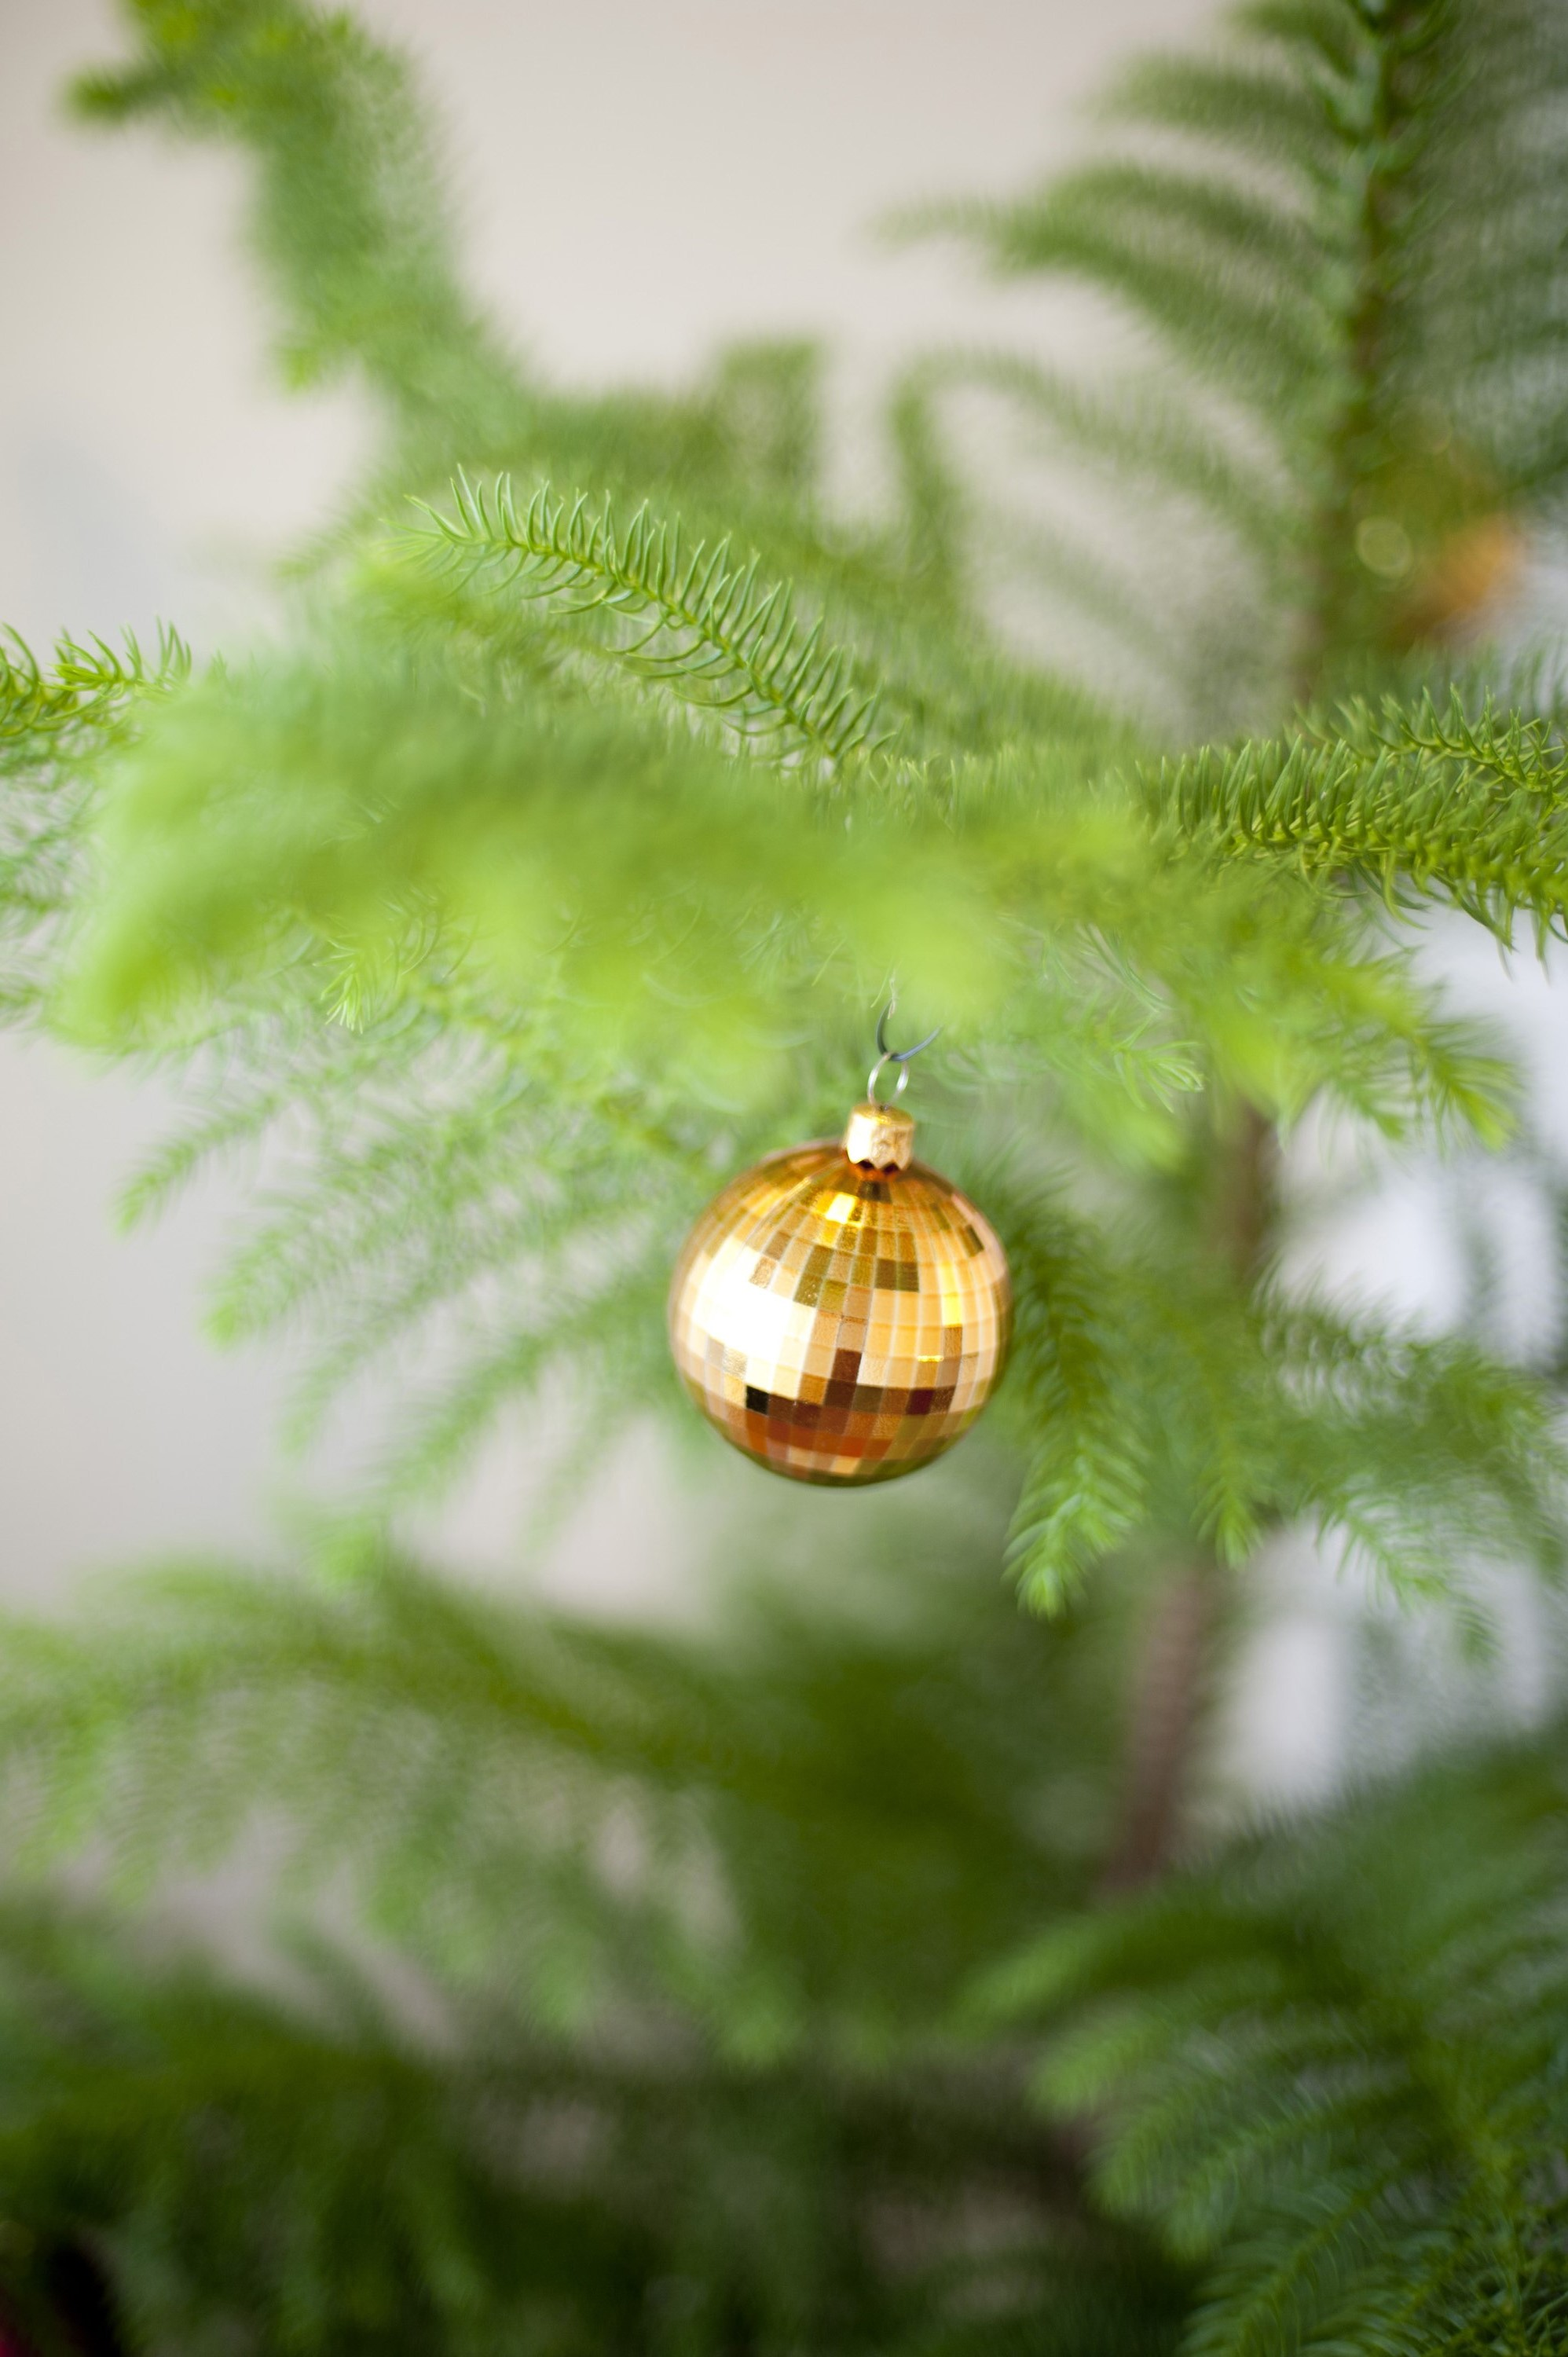 Golden bauble hanging on a natural evergreen pine Christmas tree to celebrate Christmas and the festive season